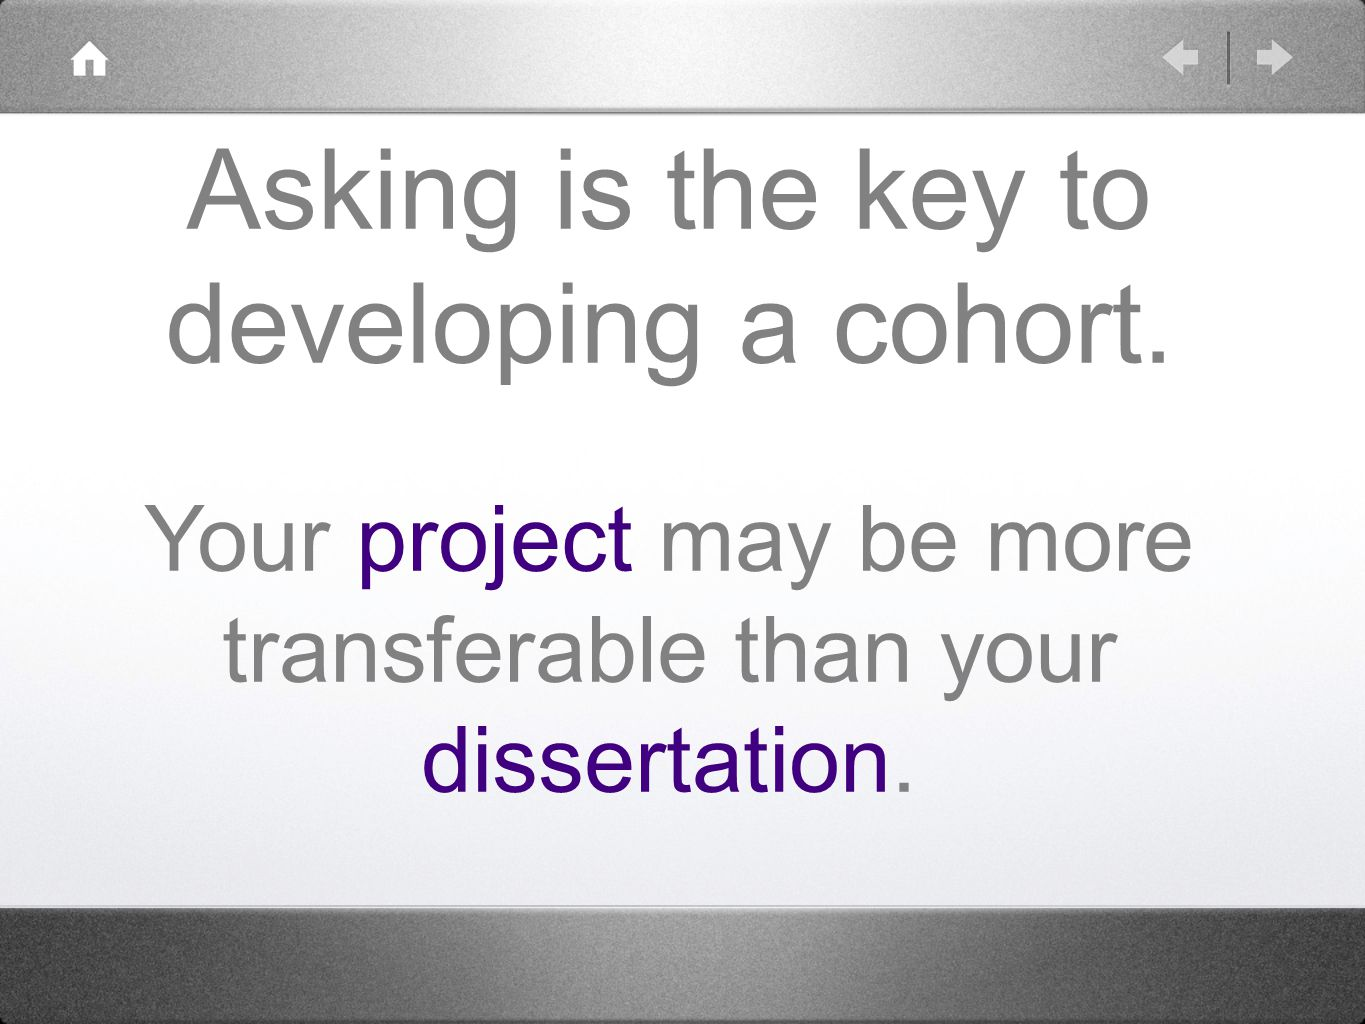 Asking is the key to developing a cohort.